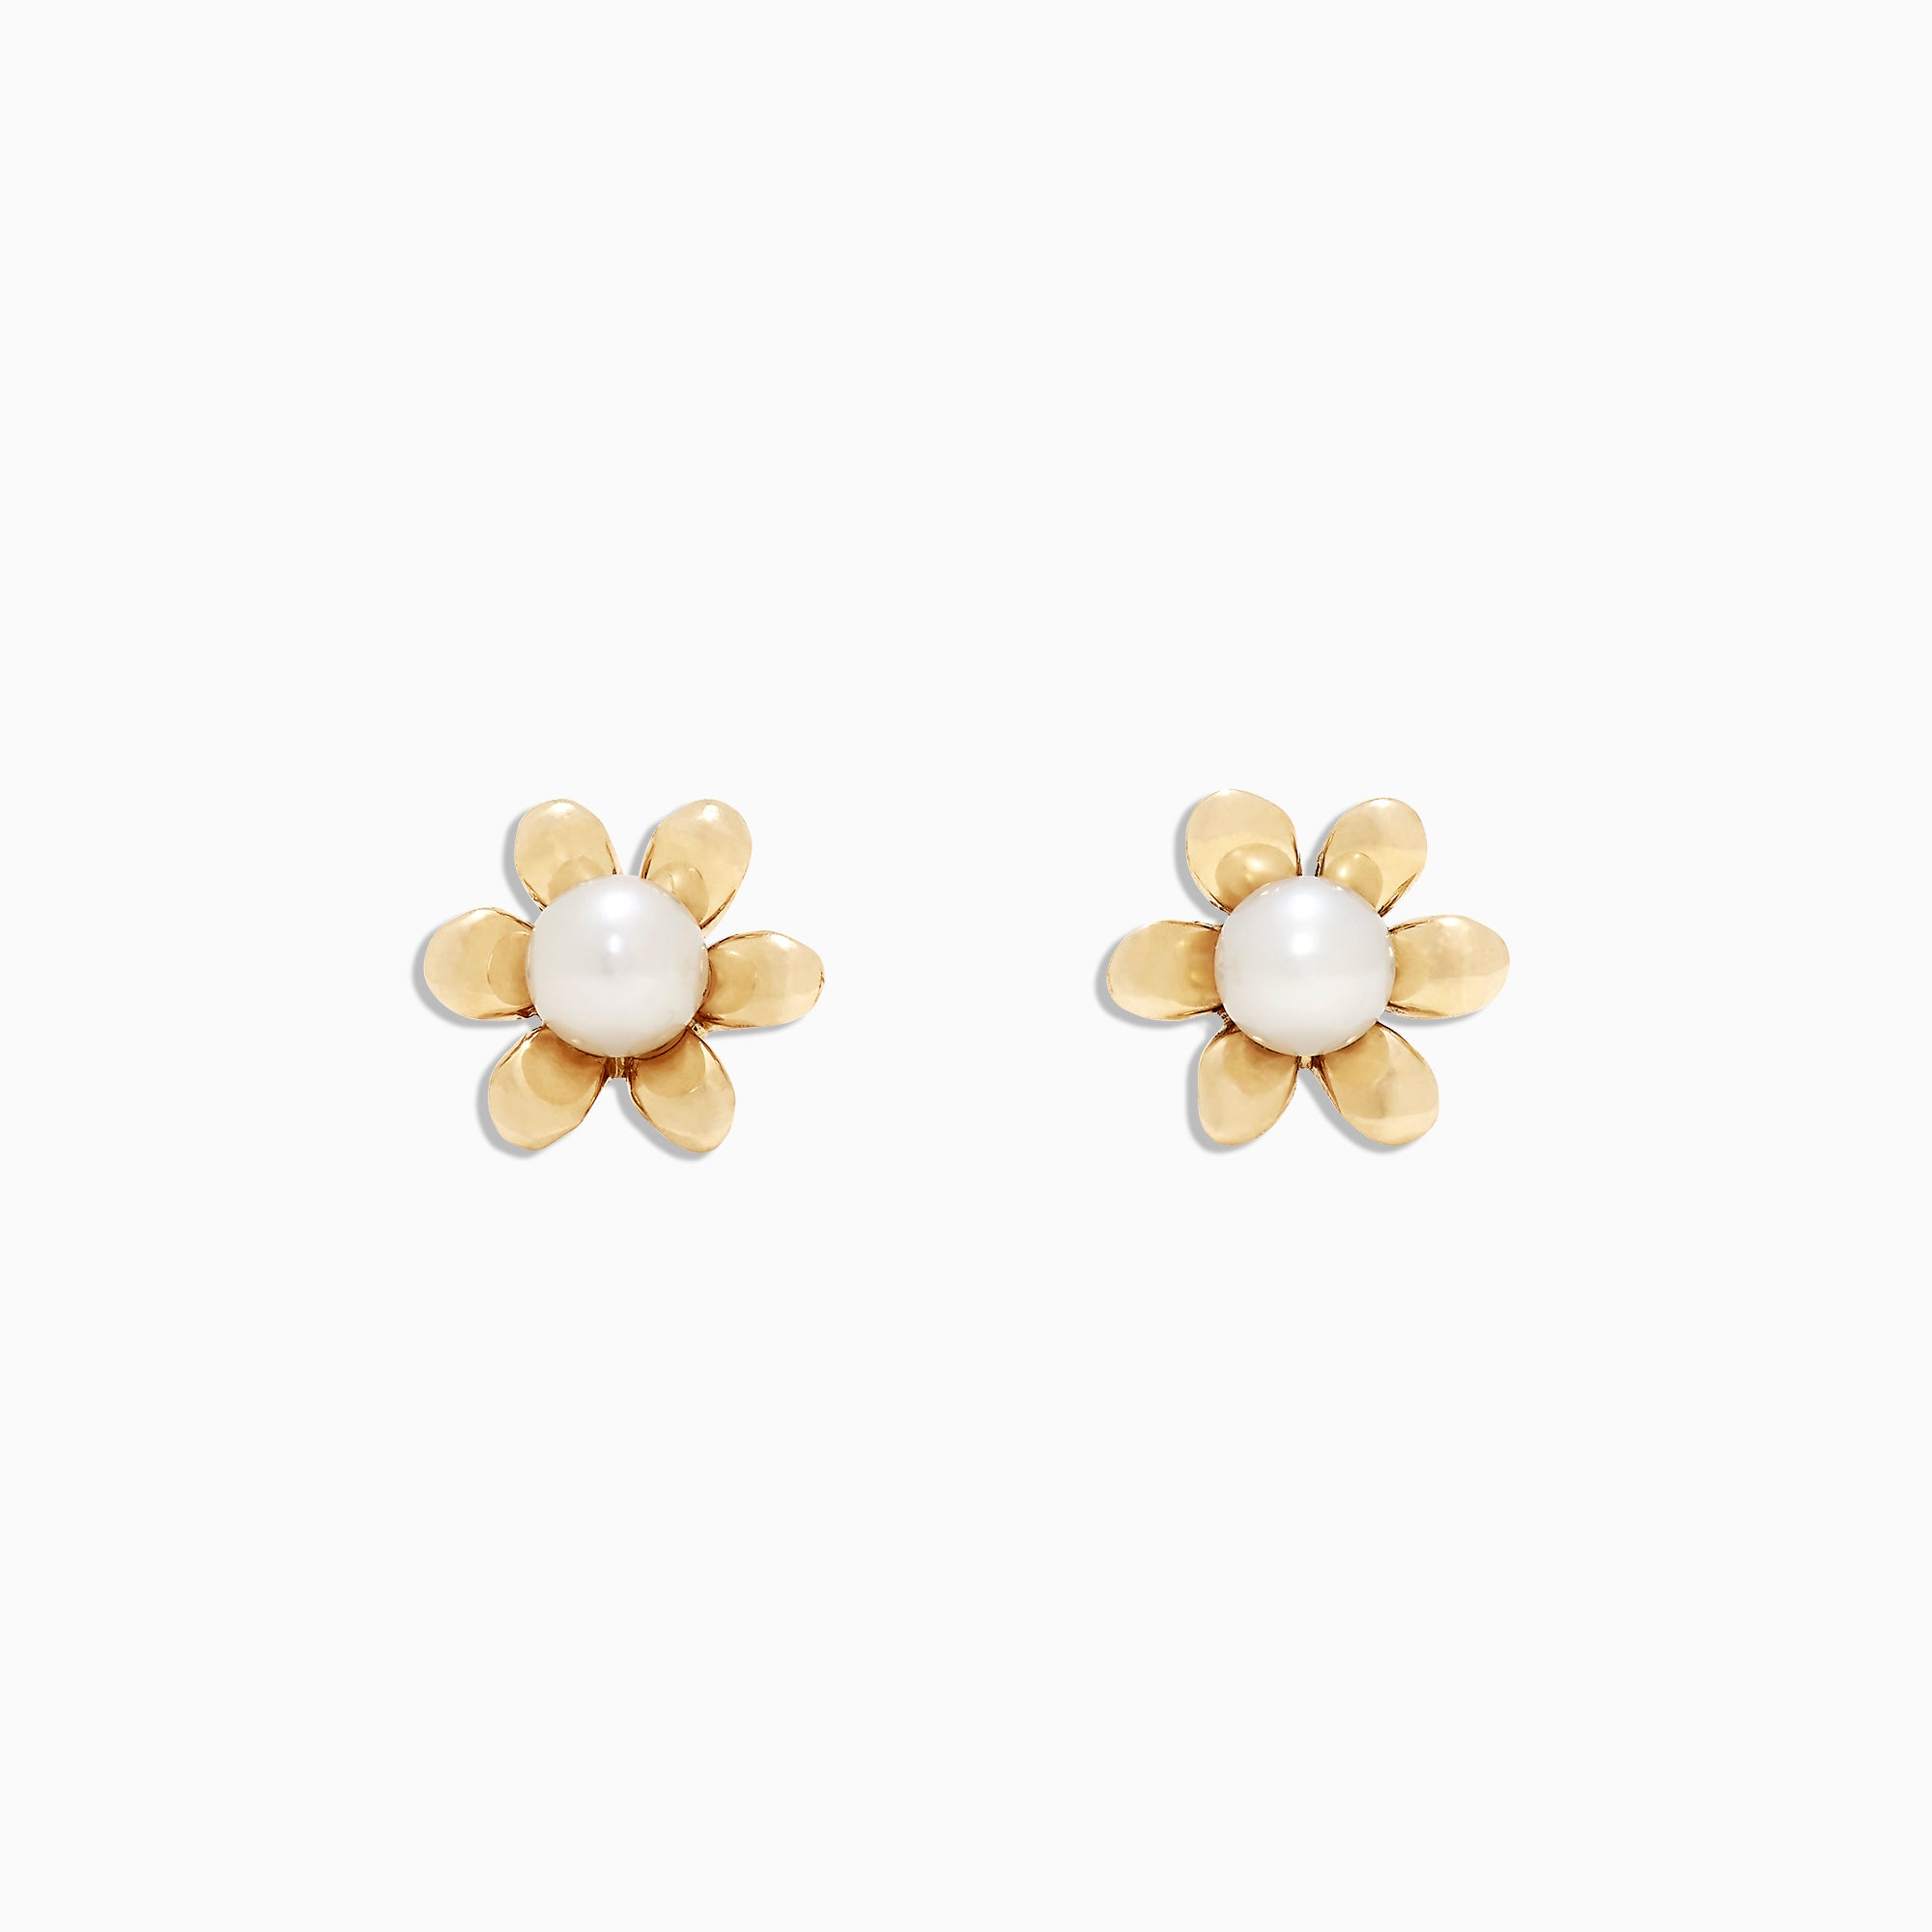 Effy Kidz Yellow Gold Pearl Flower Stud Earrings